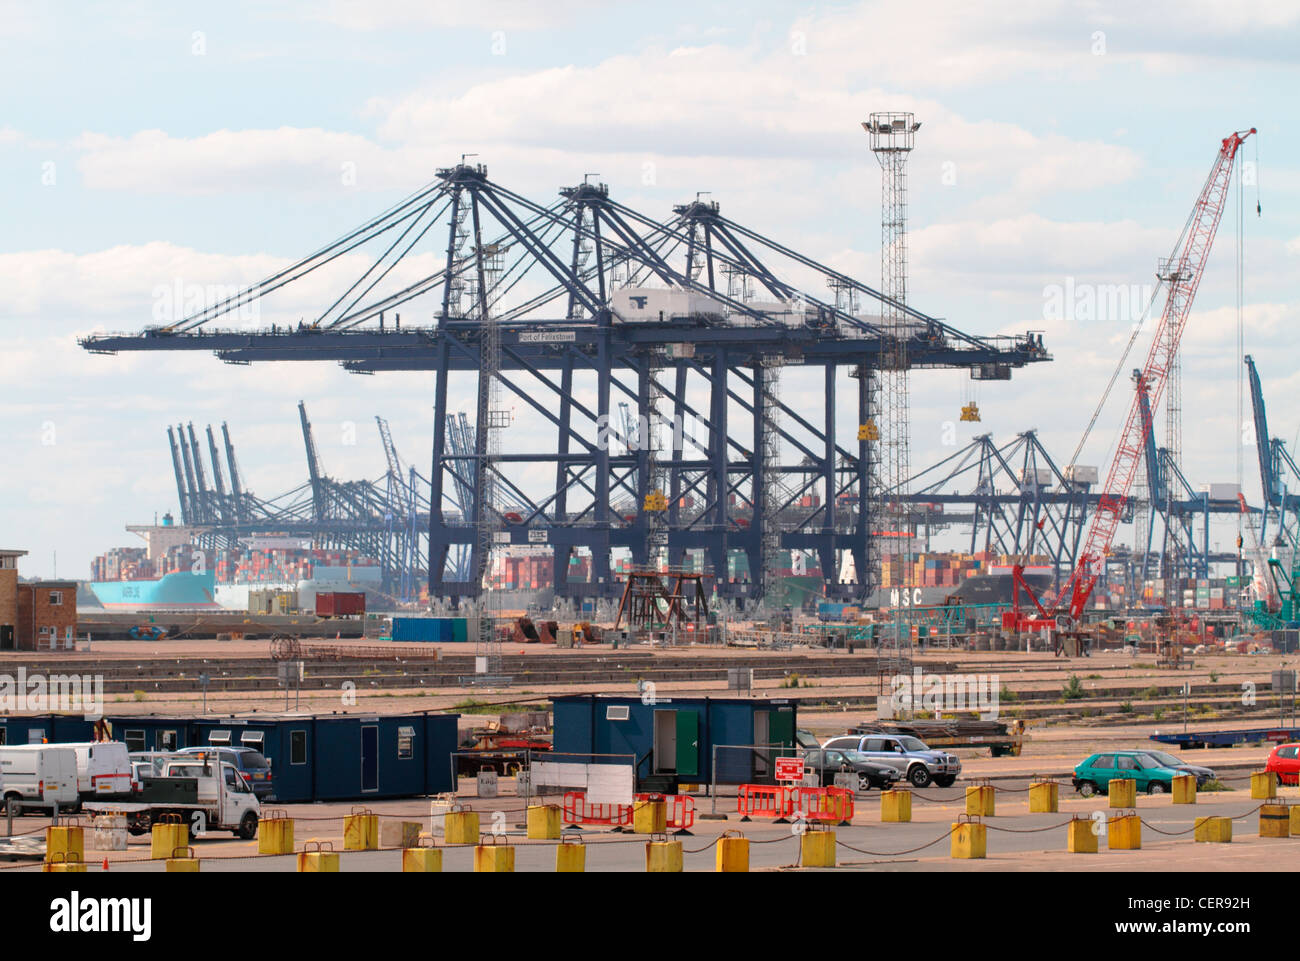 Gantry cranes at the Port of Felixstowe, the largest container port in the UK. - Stock Image